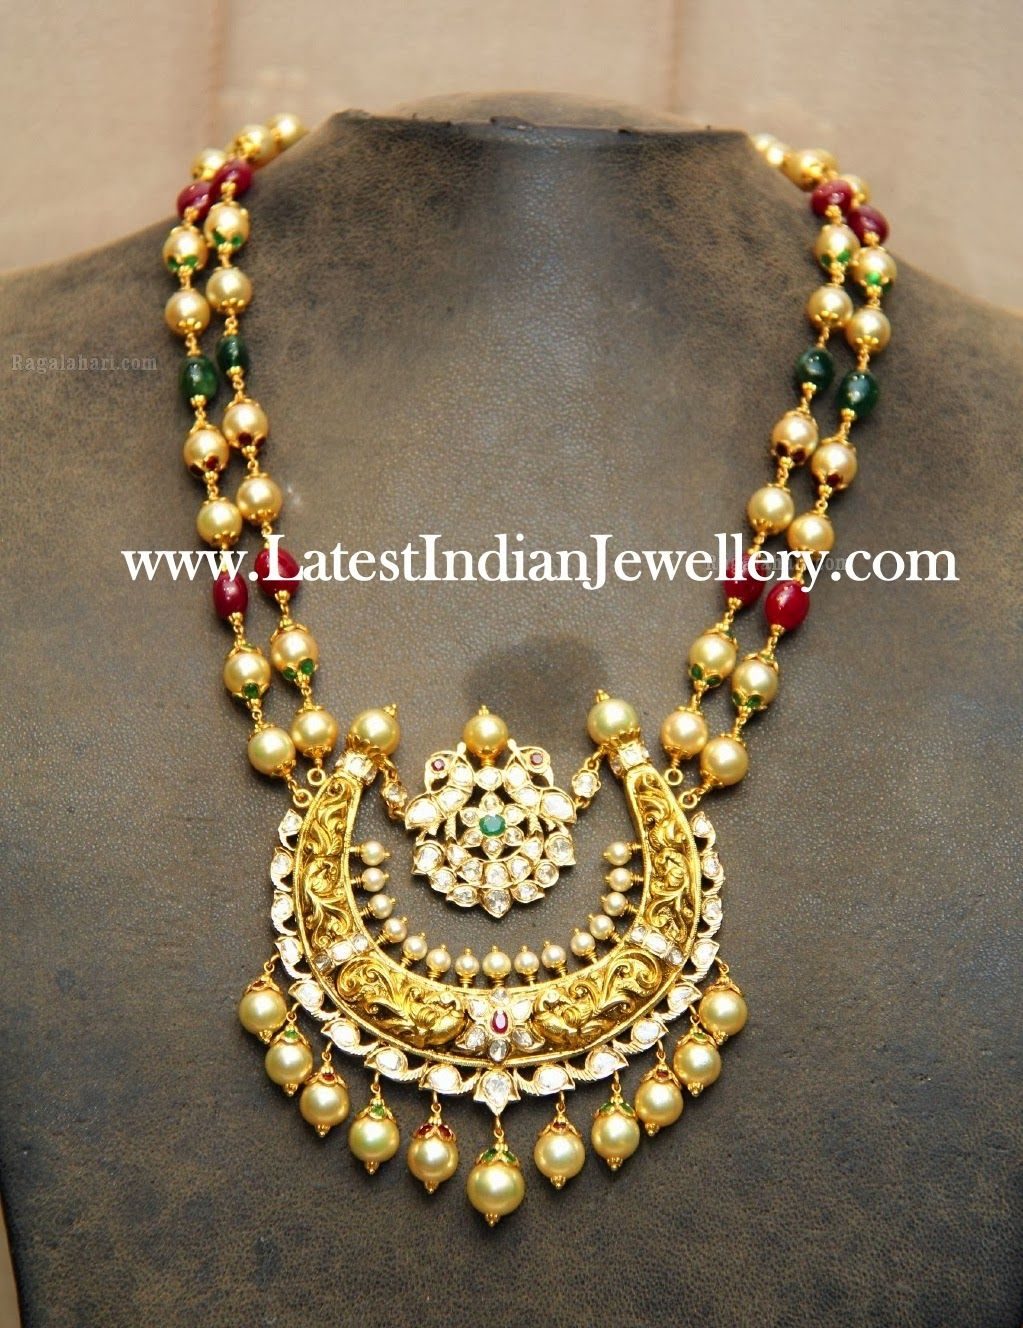 Exclusive Fashionable Beads Neck Piece From Hiya Jewellers, Hyderabad The  Double Stringed Pearl,